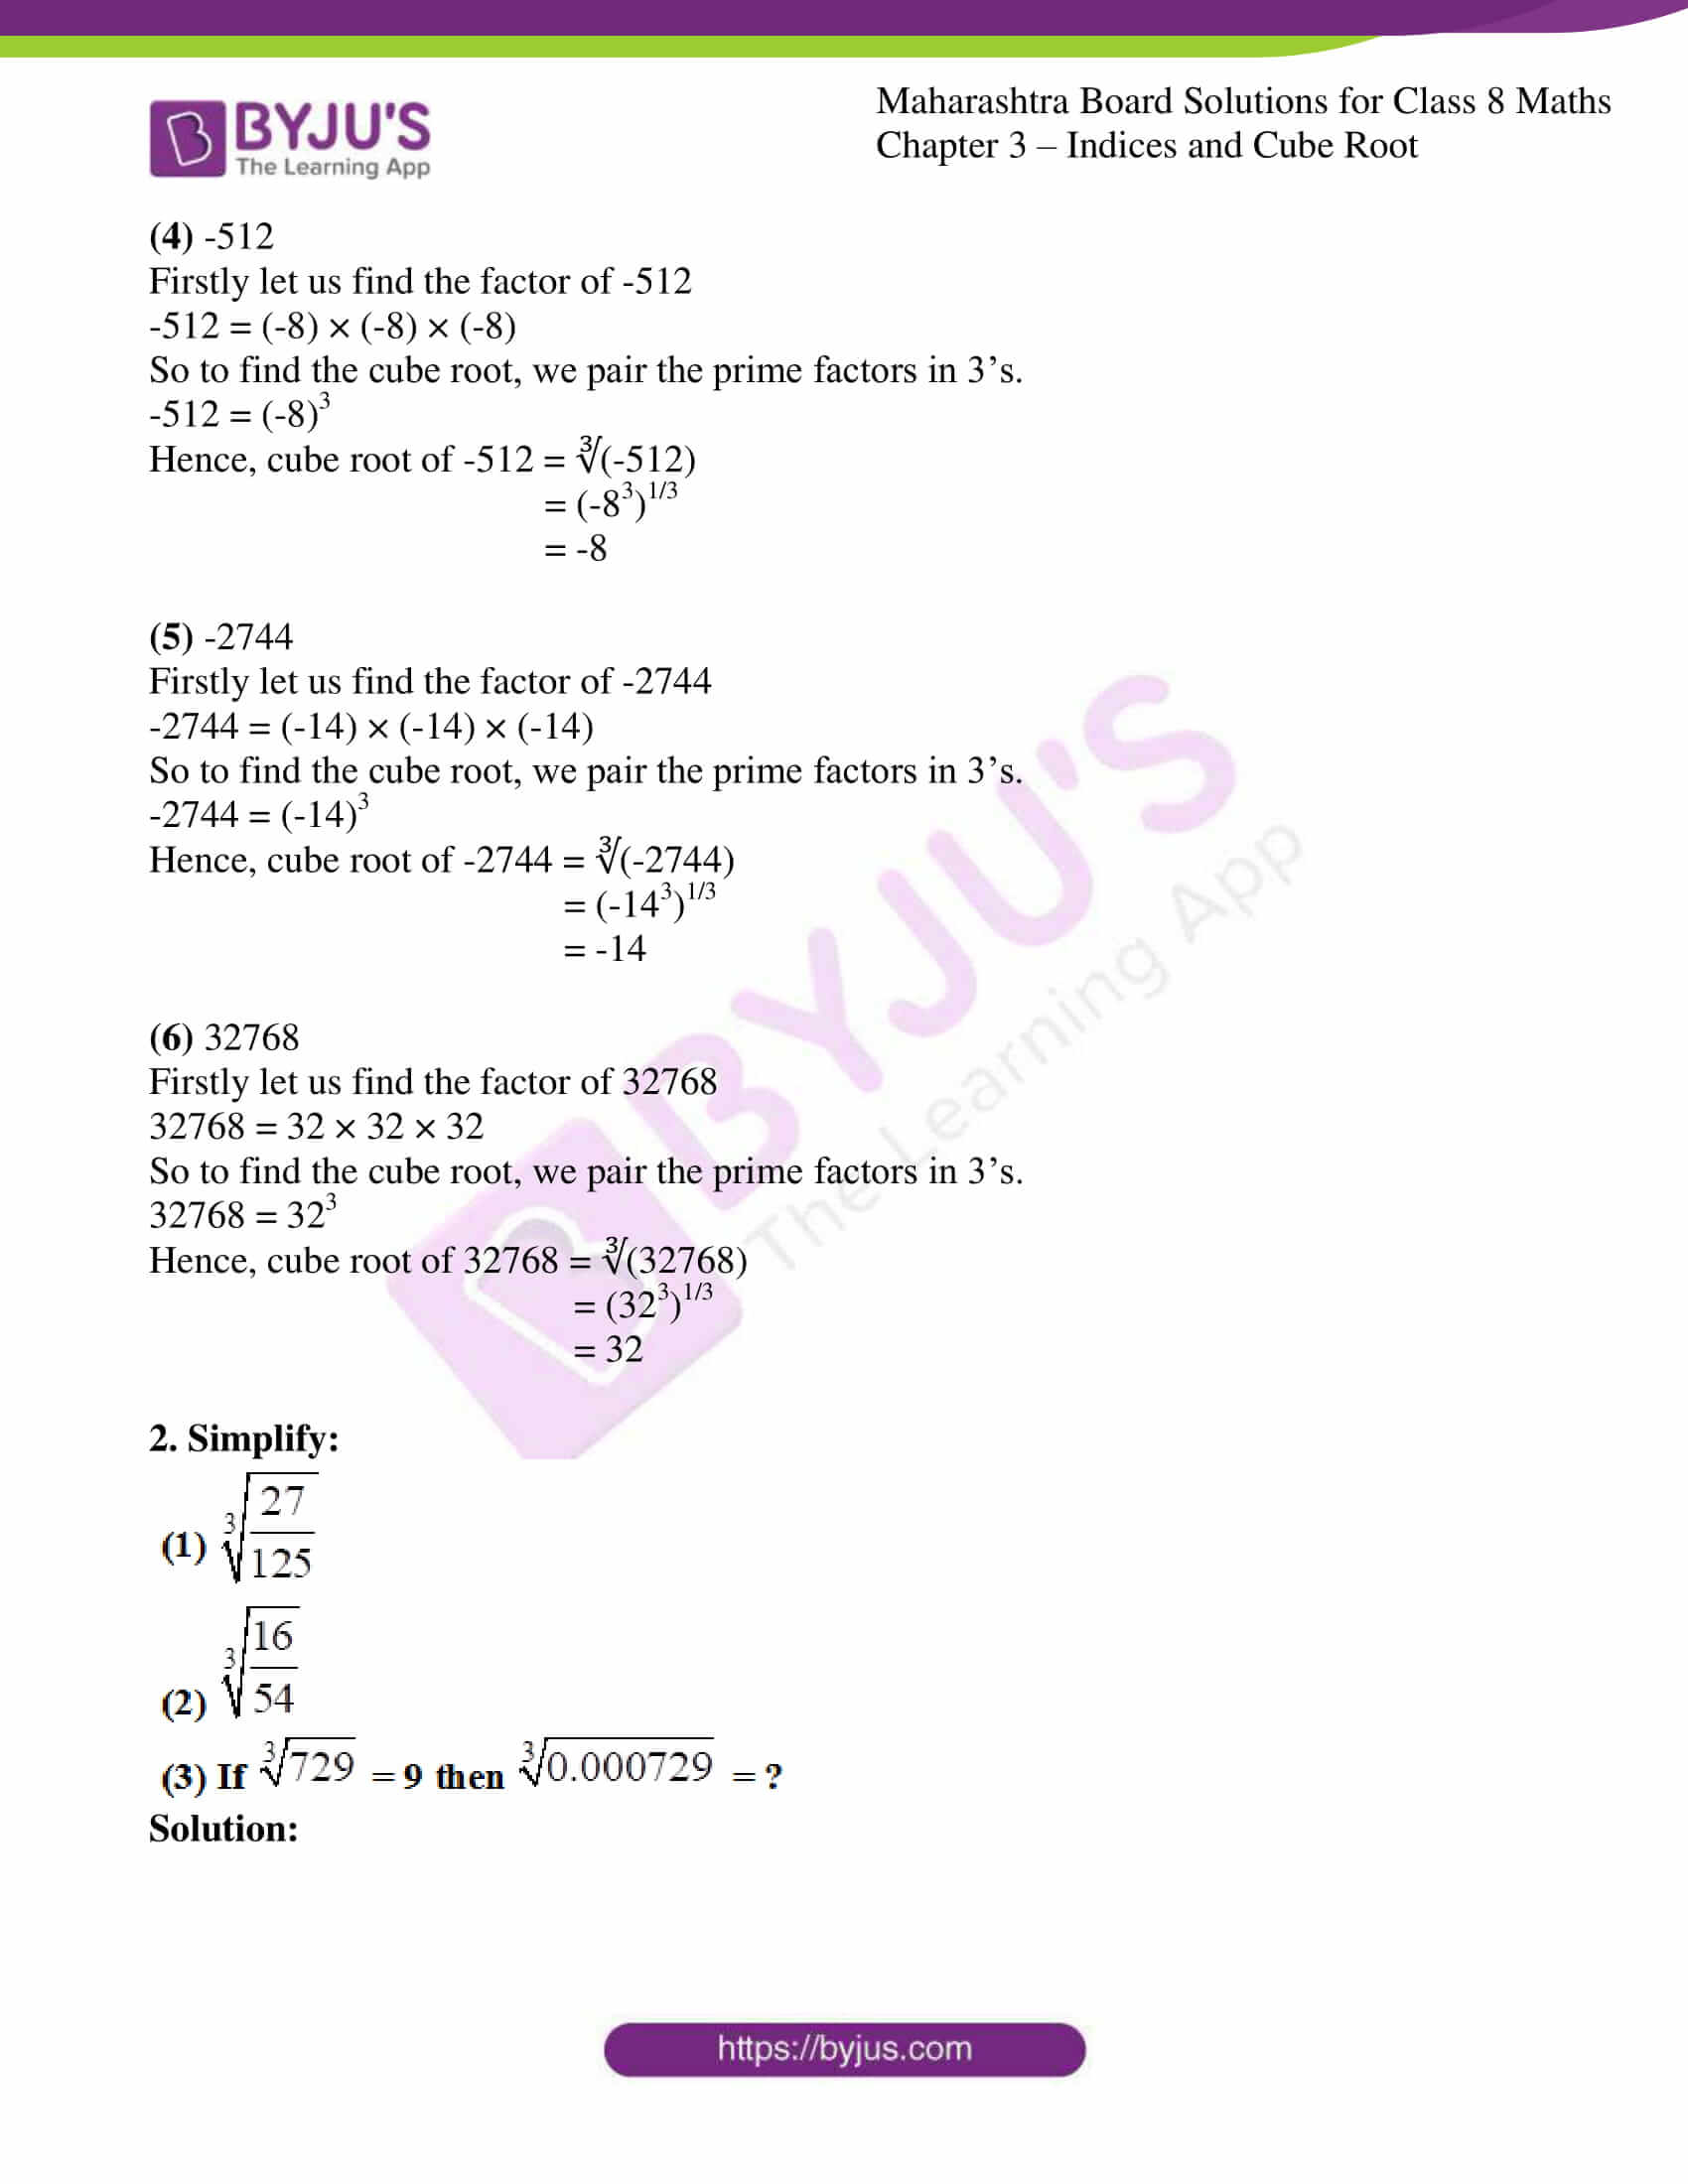 msbshse sol for class 8 maths chapter 3 6